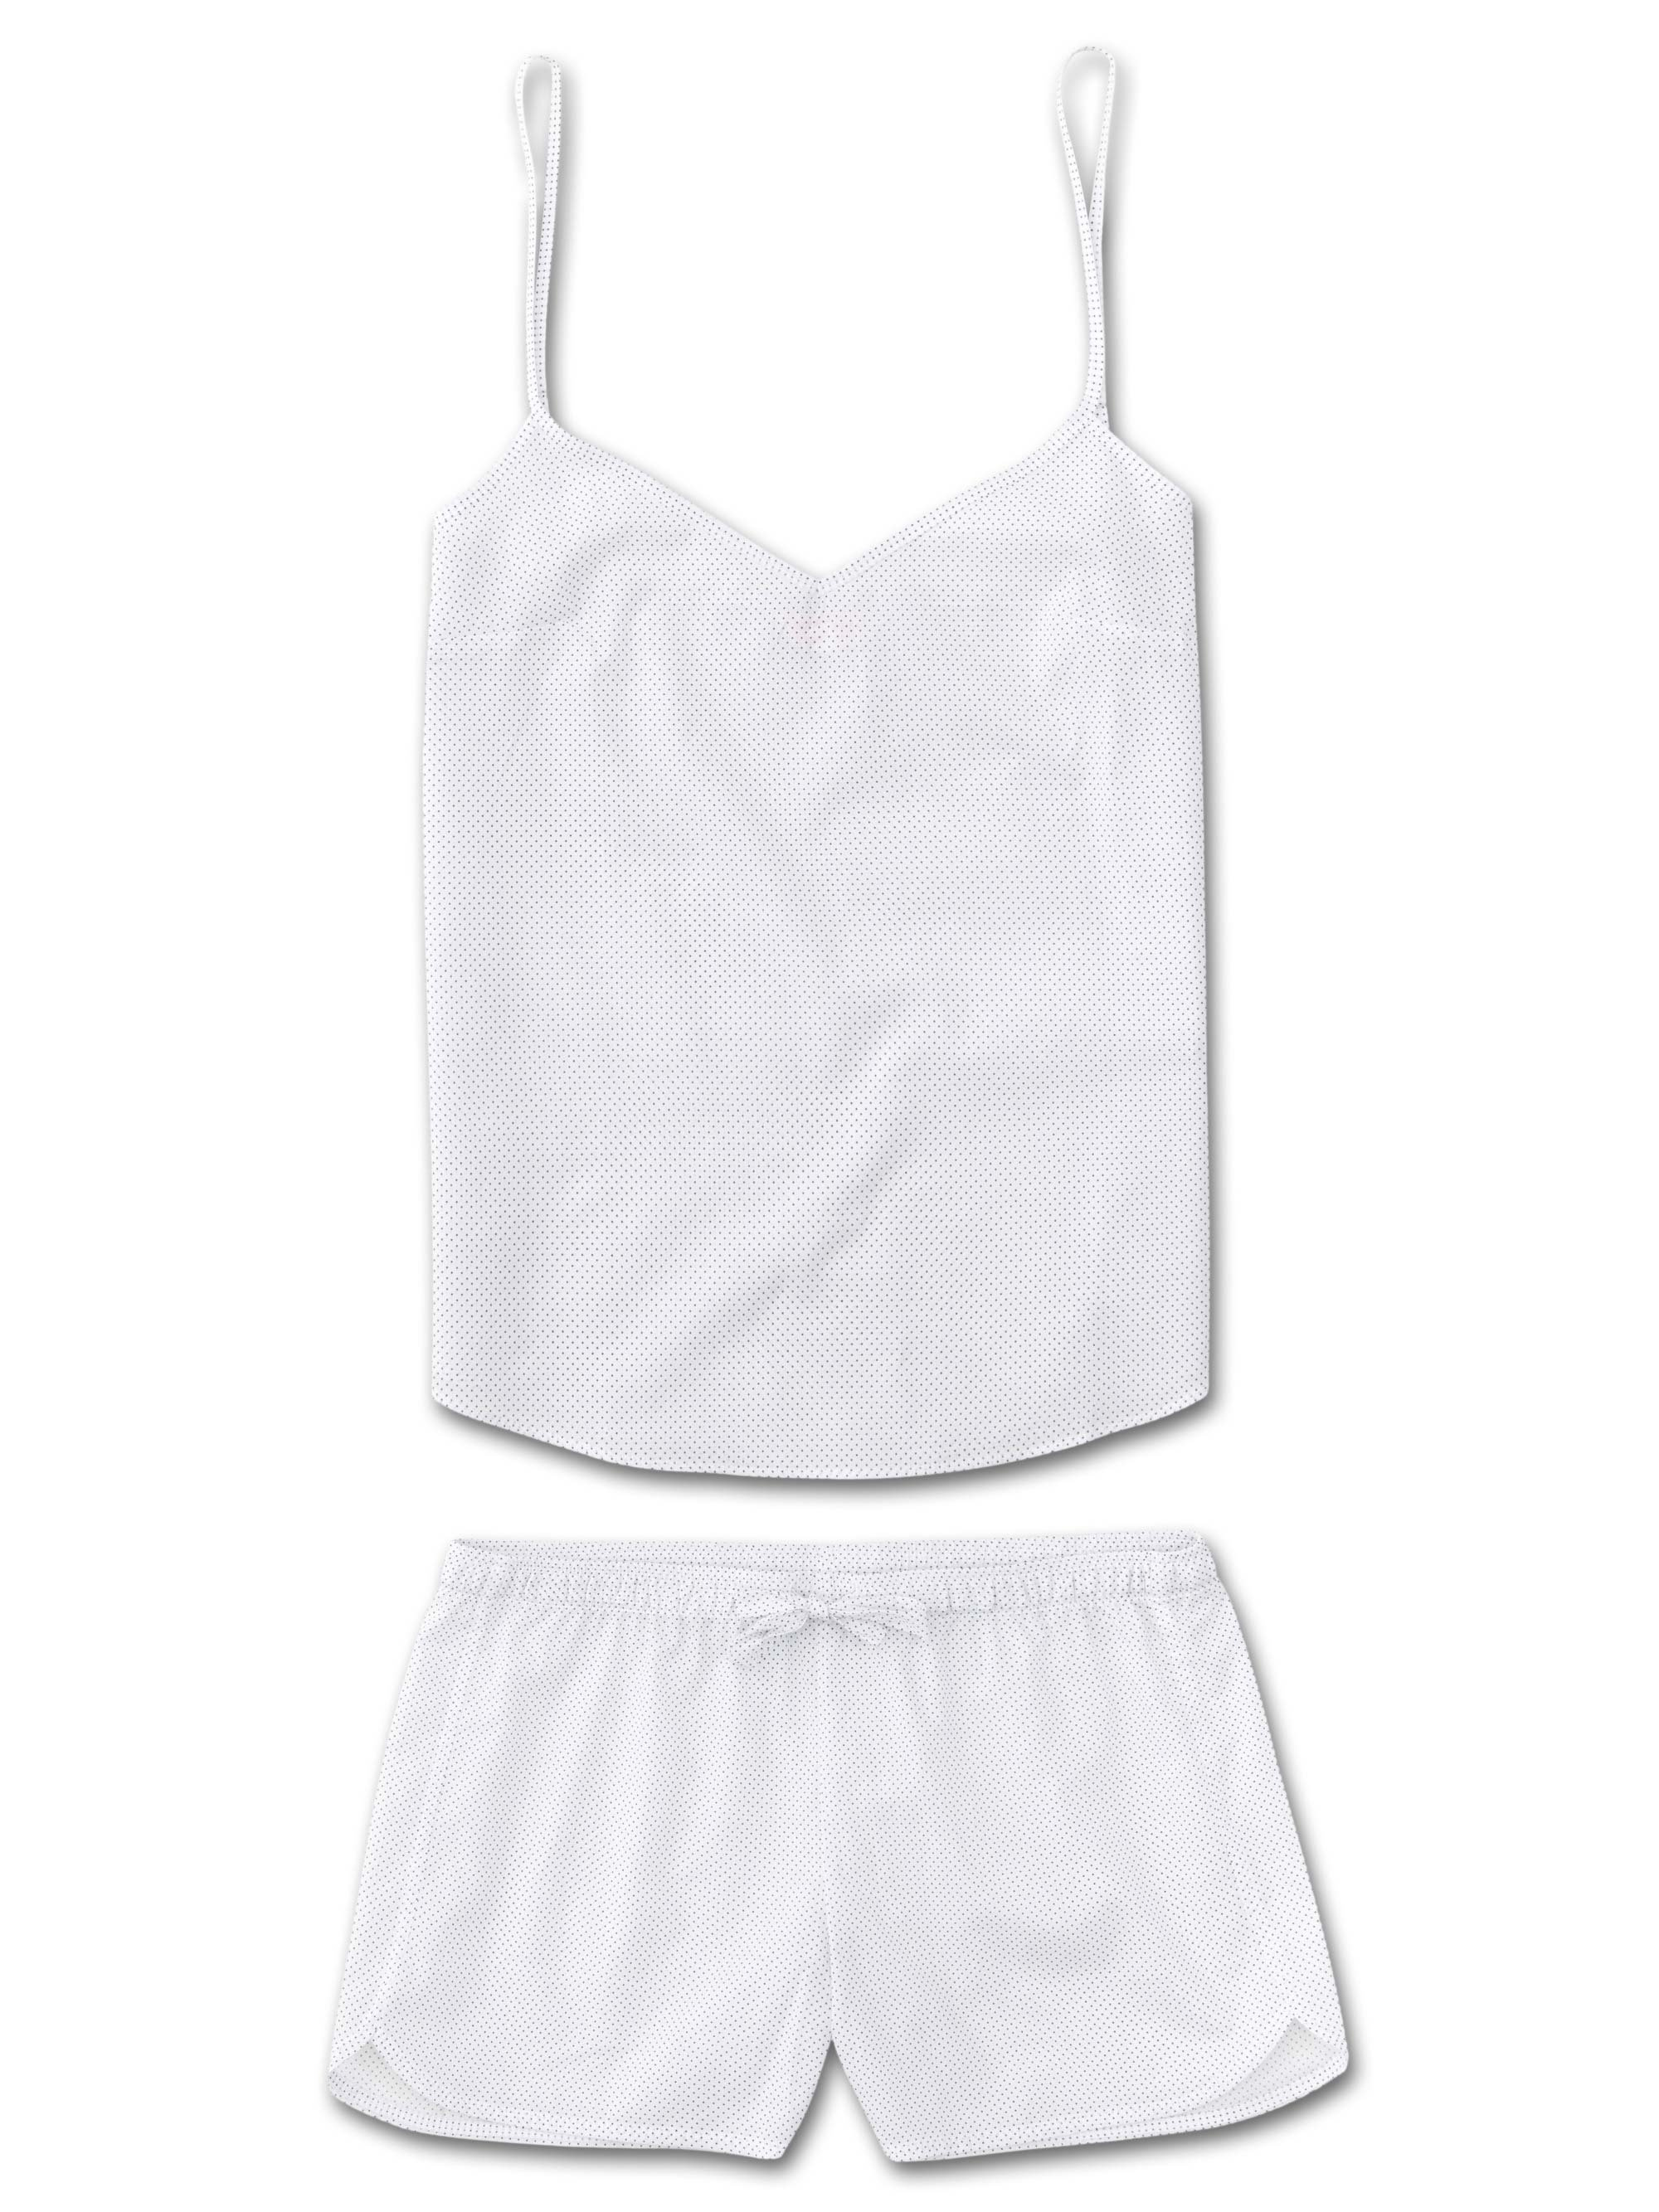 Women's Cami Short Pyjama Set Plaza 21 Cotton Batiste White